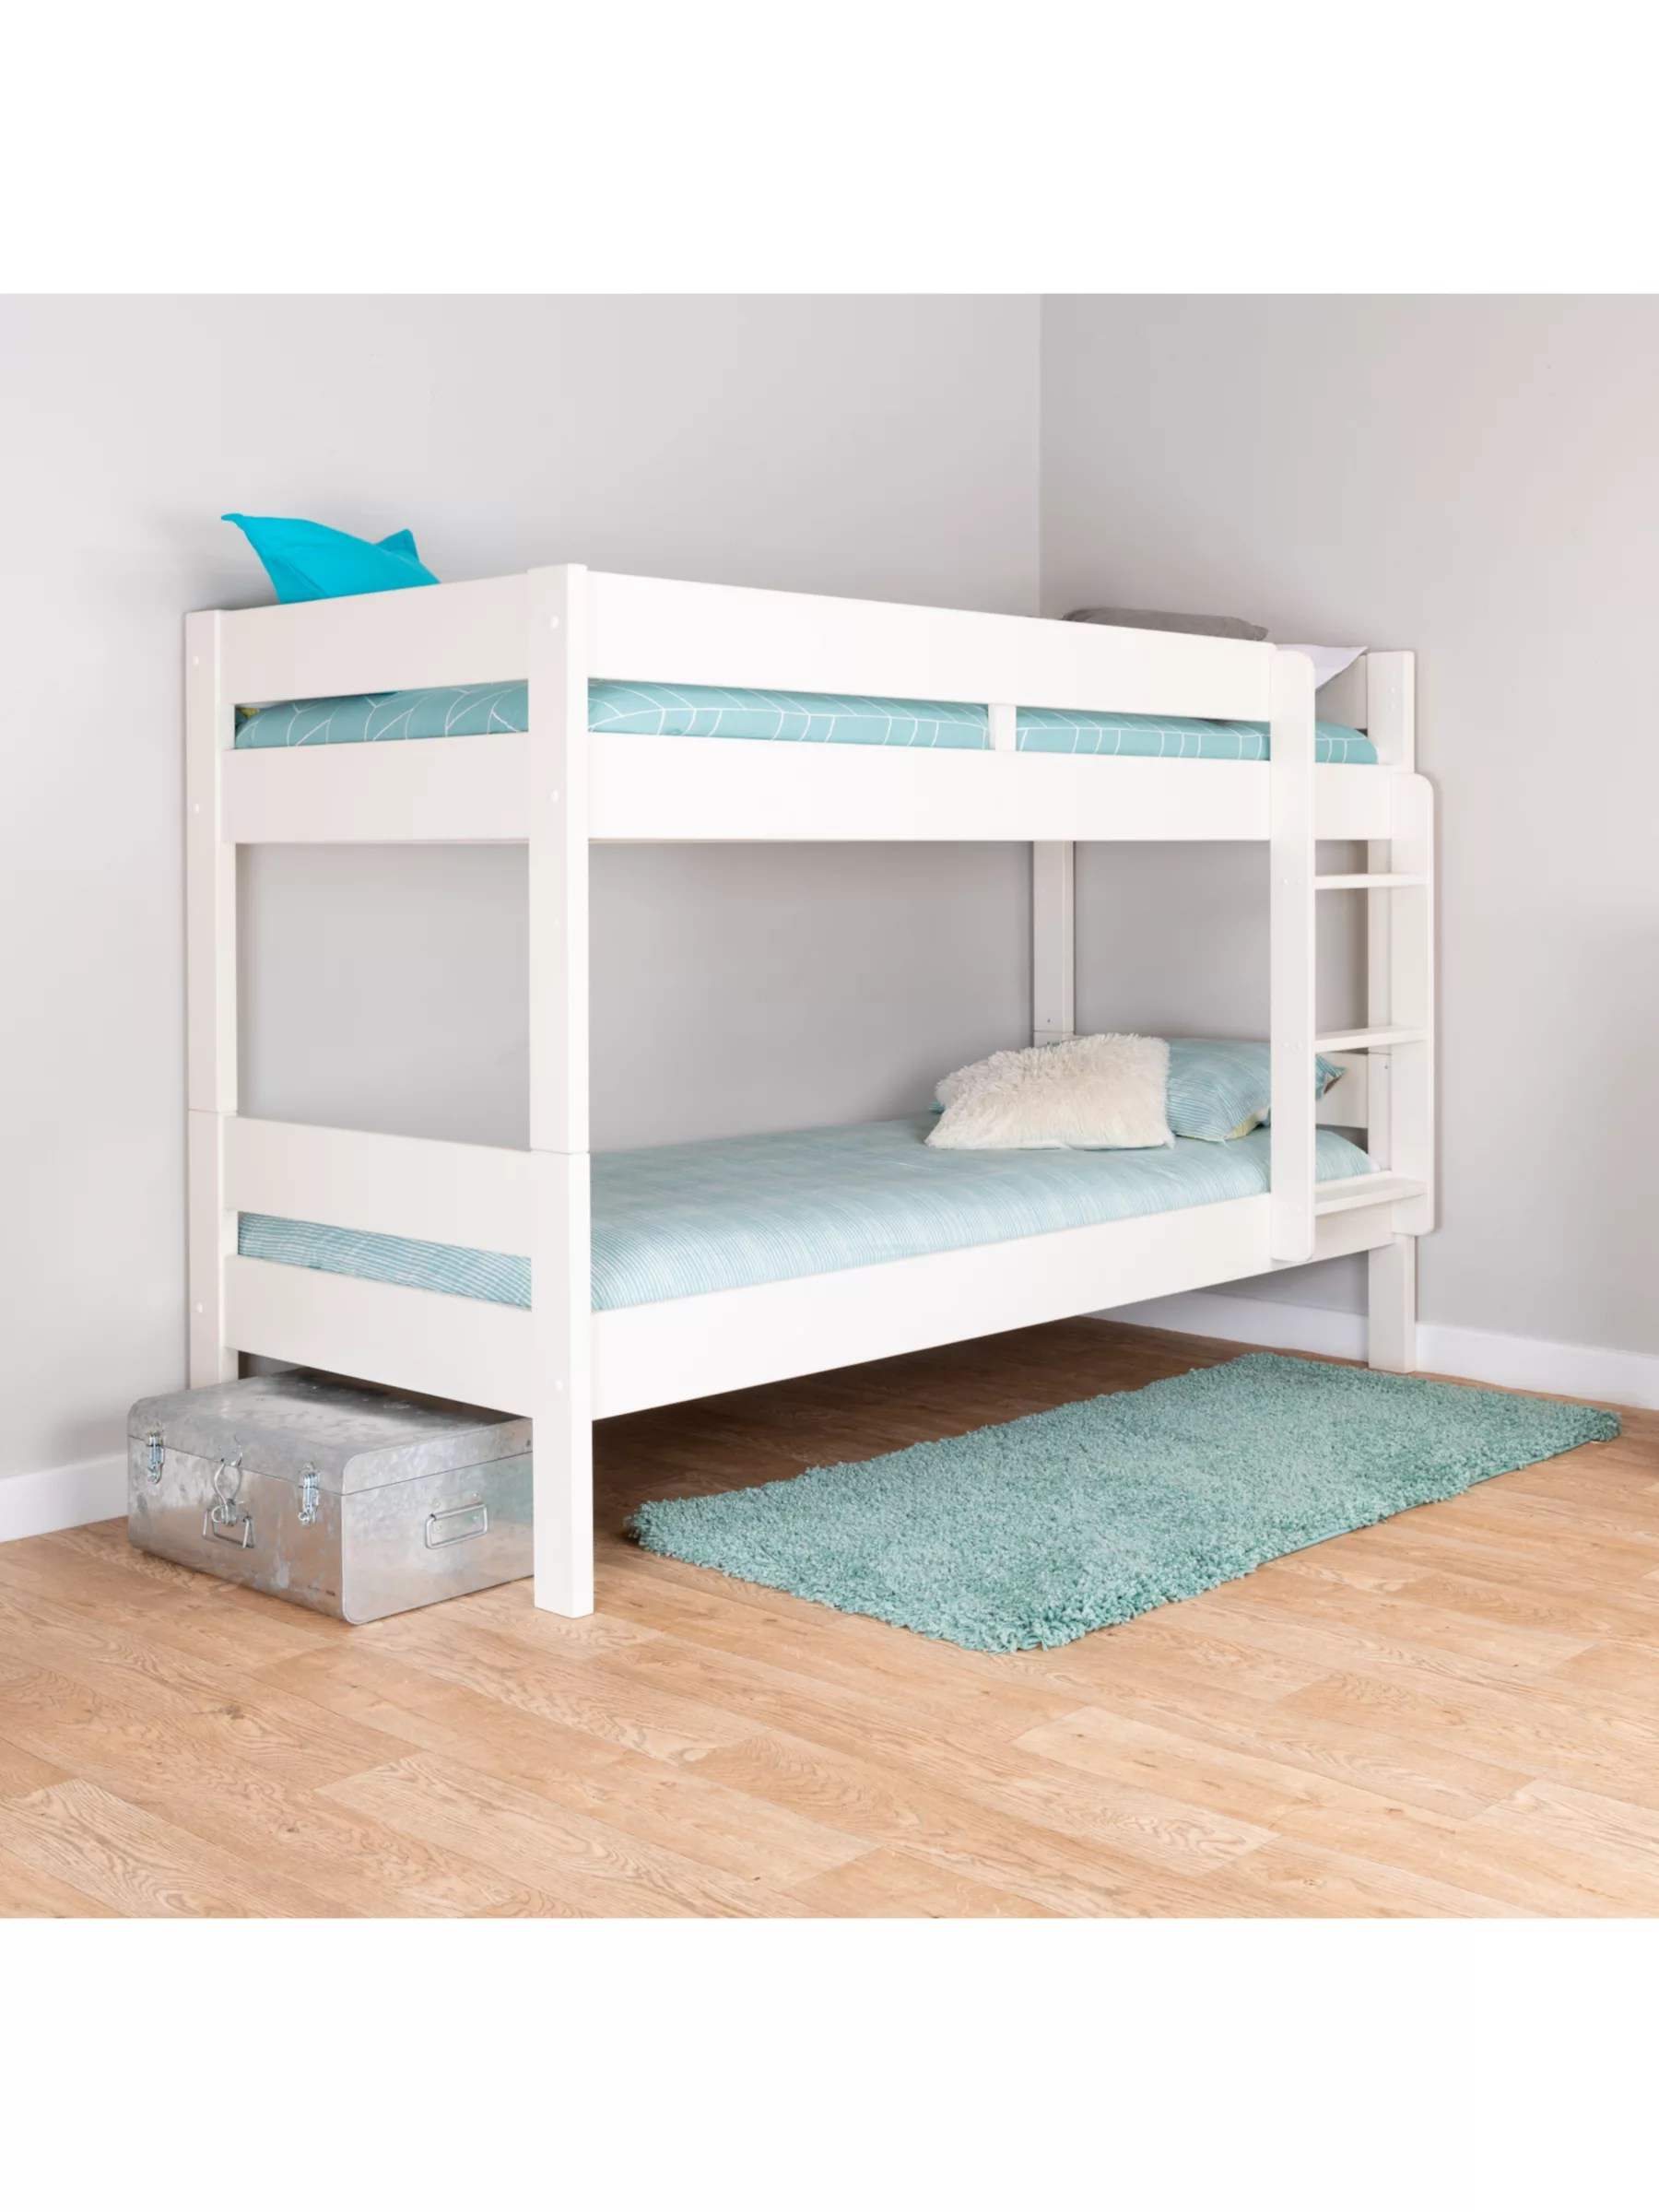 Stompa Compact Detachable Bunk Bed Single White At John Lewis Partners